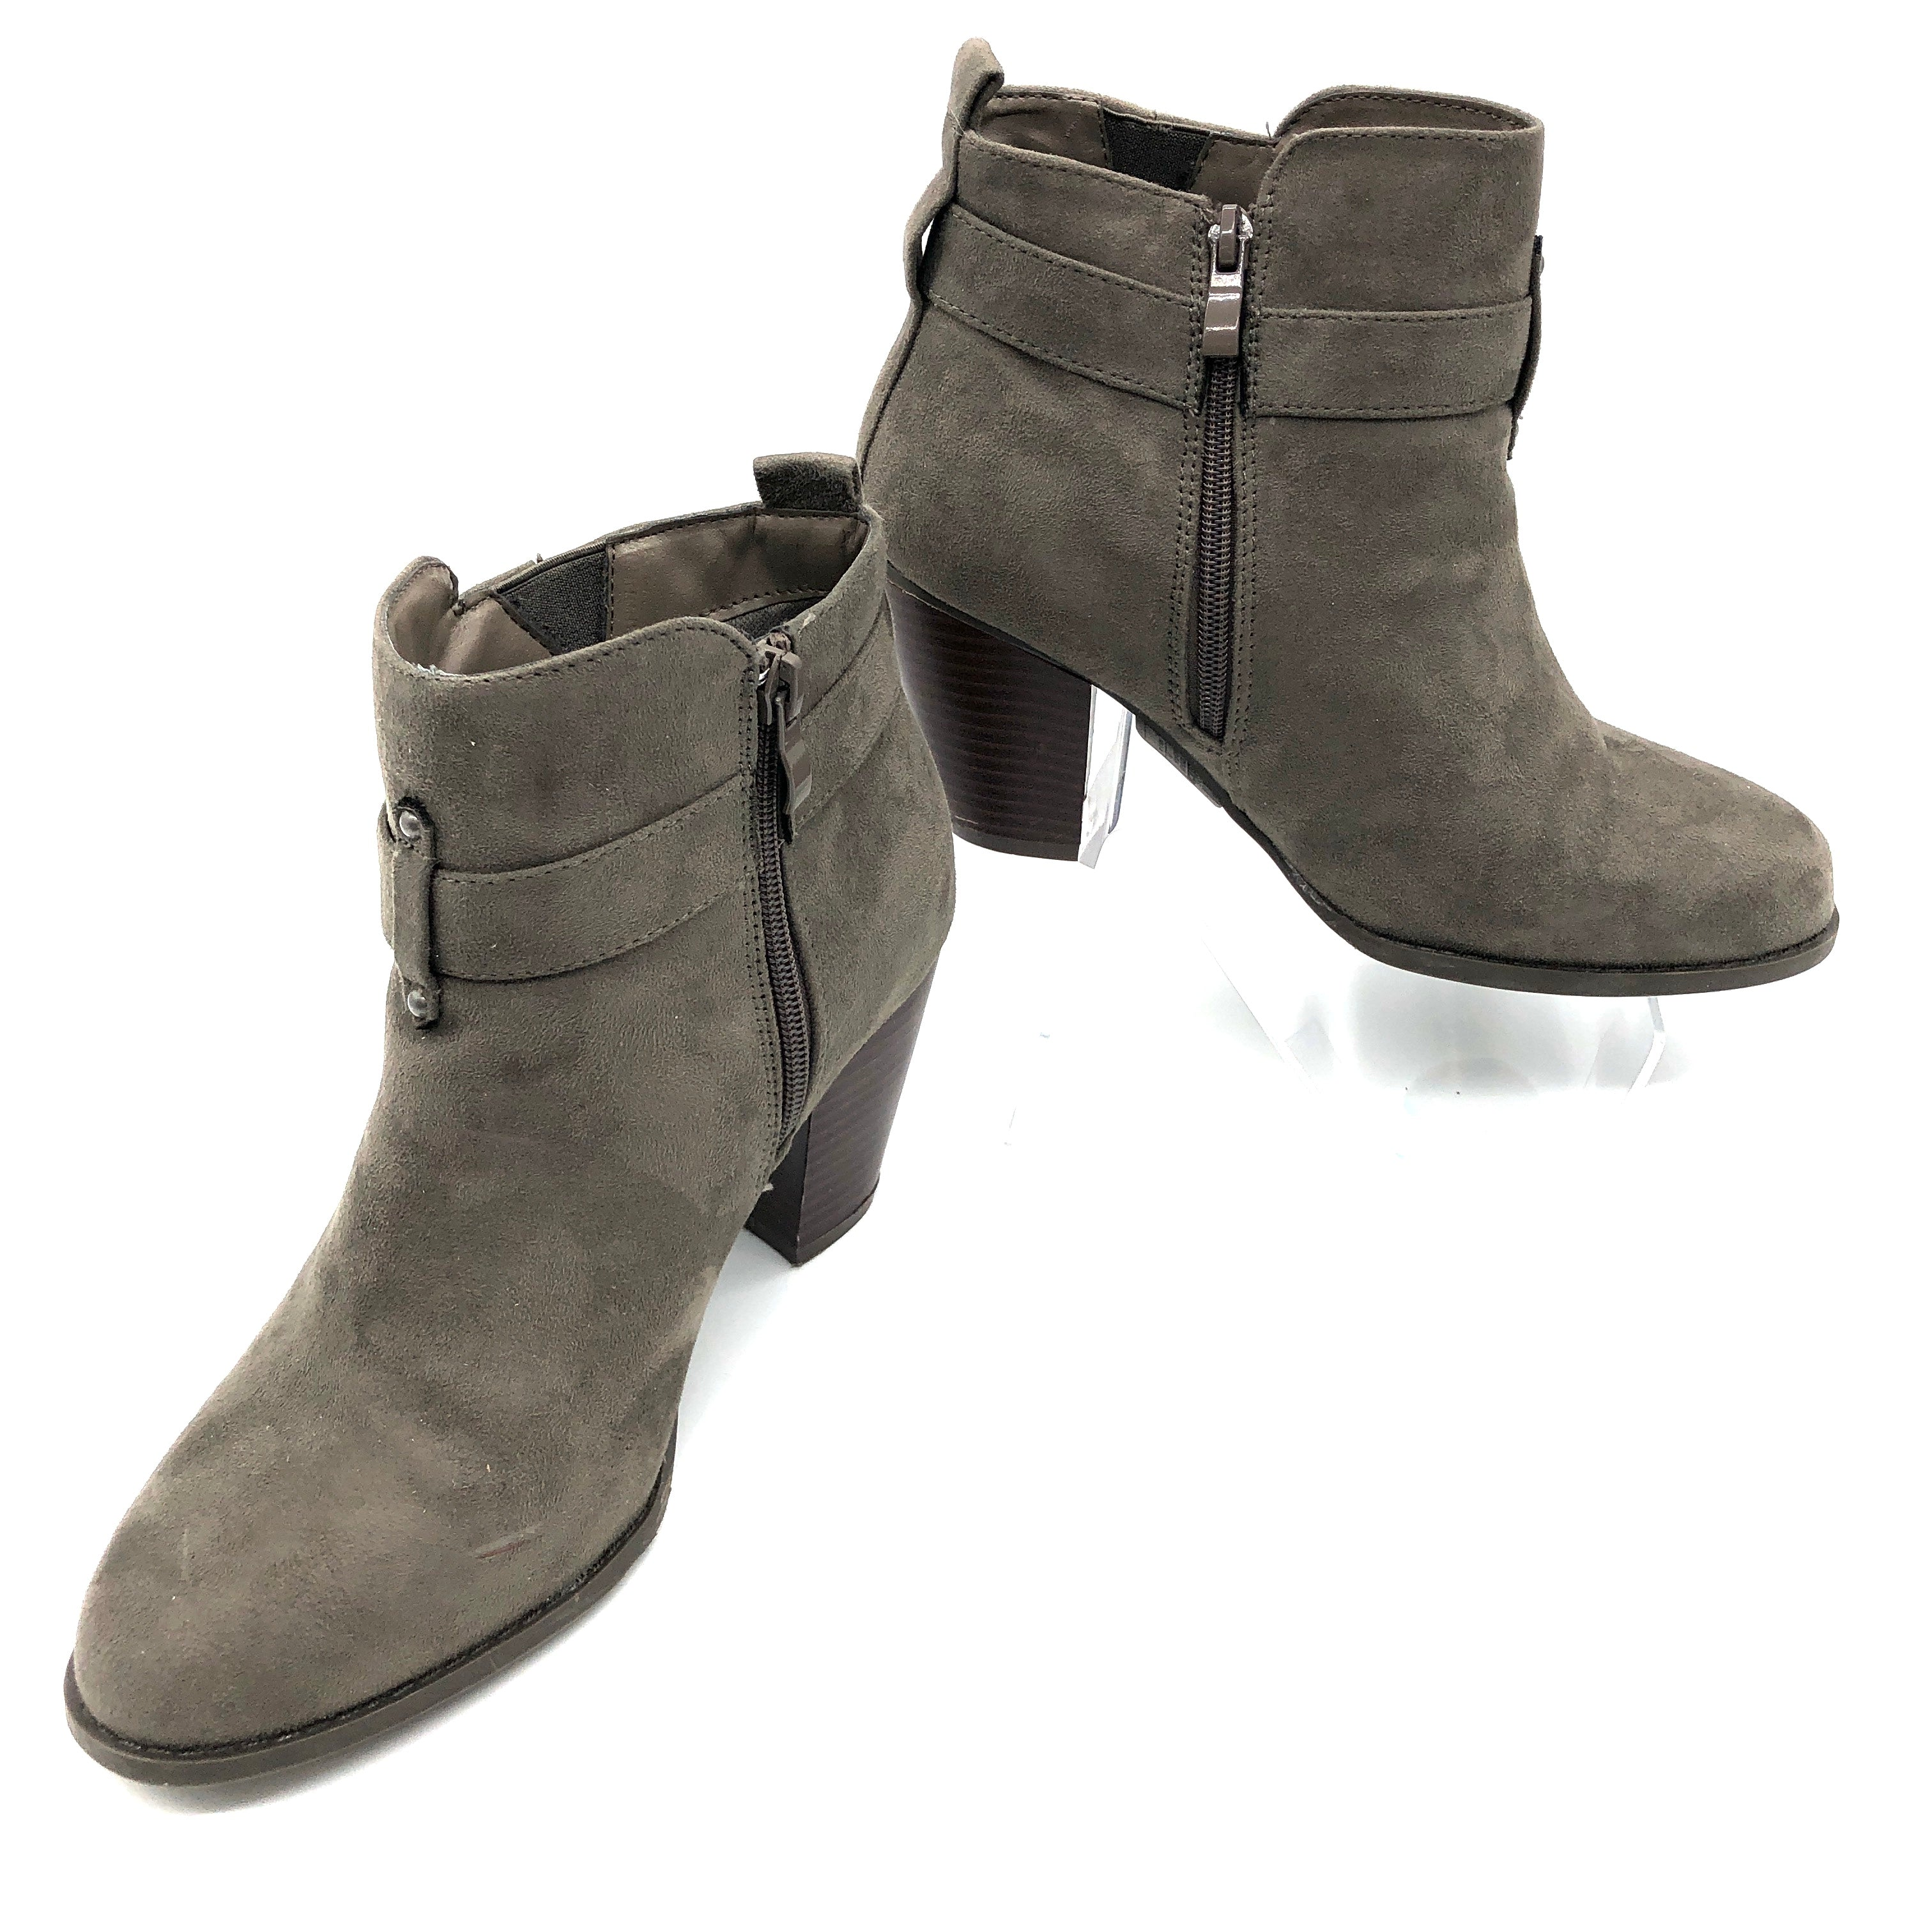 Primary Photo - BRAND: TORRID <BR>STYLE: BOOTS ANKLE <BR>COLOR: BROWN  / TAUPE<BR>SIZE: 8 <BR>SKU: 262-26241-44811